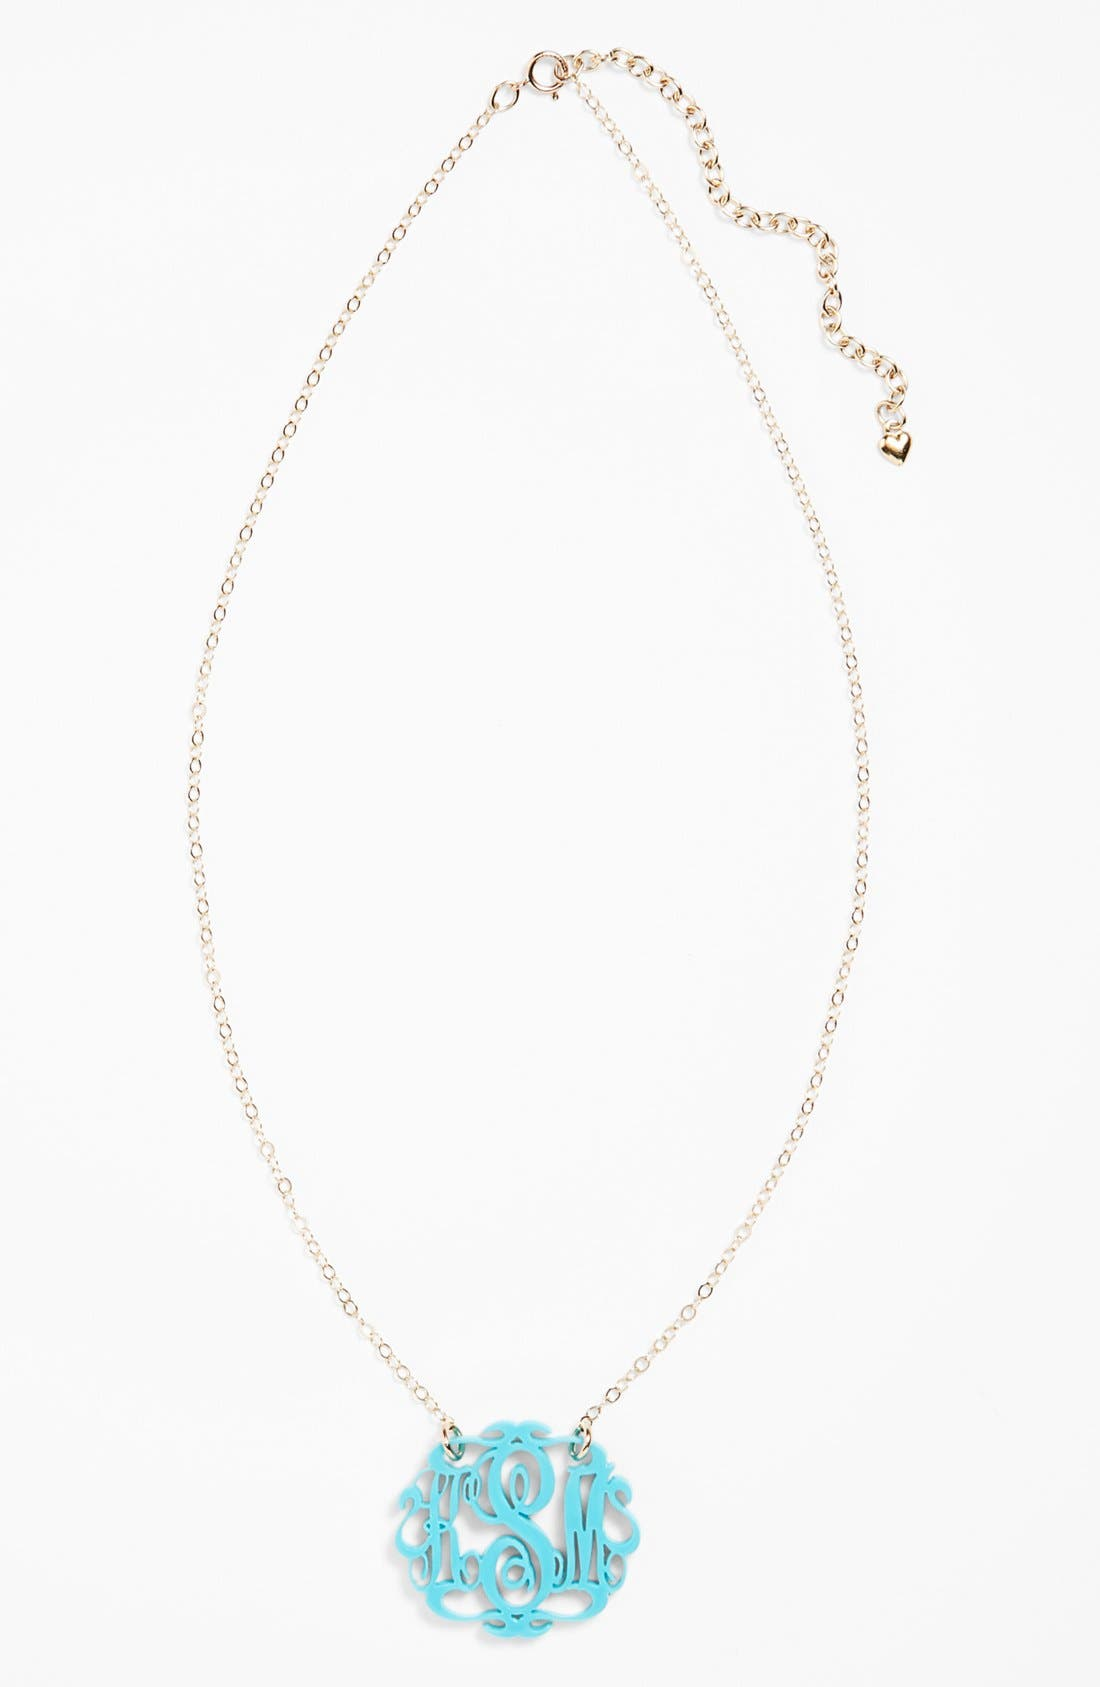 Alternate Image 1 Selected - Moon and Lola Small Oval Personalized Monogram Pendant Necklace (Nordstrom Exclusive)